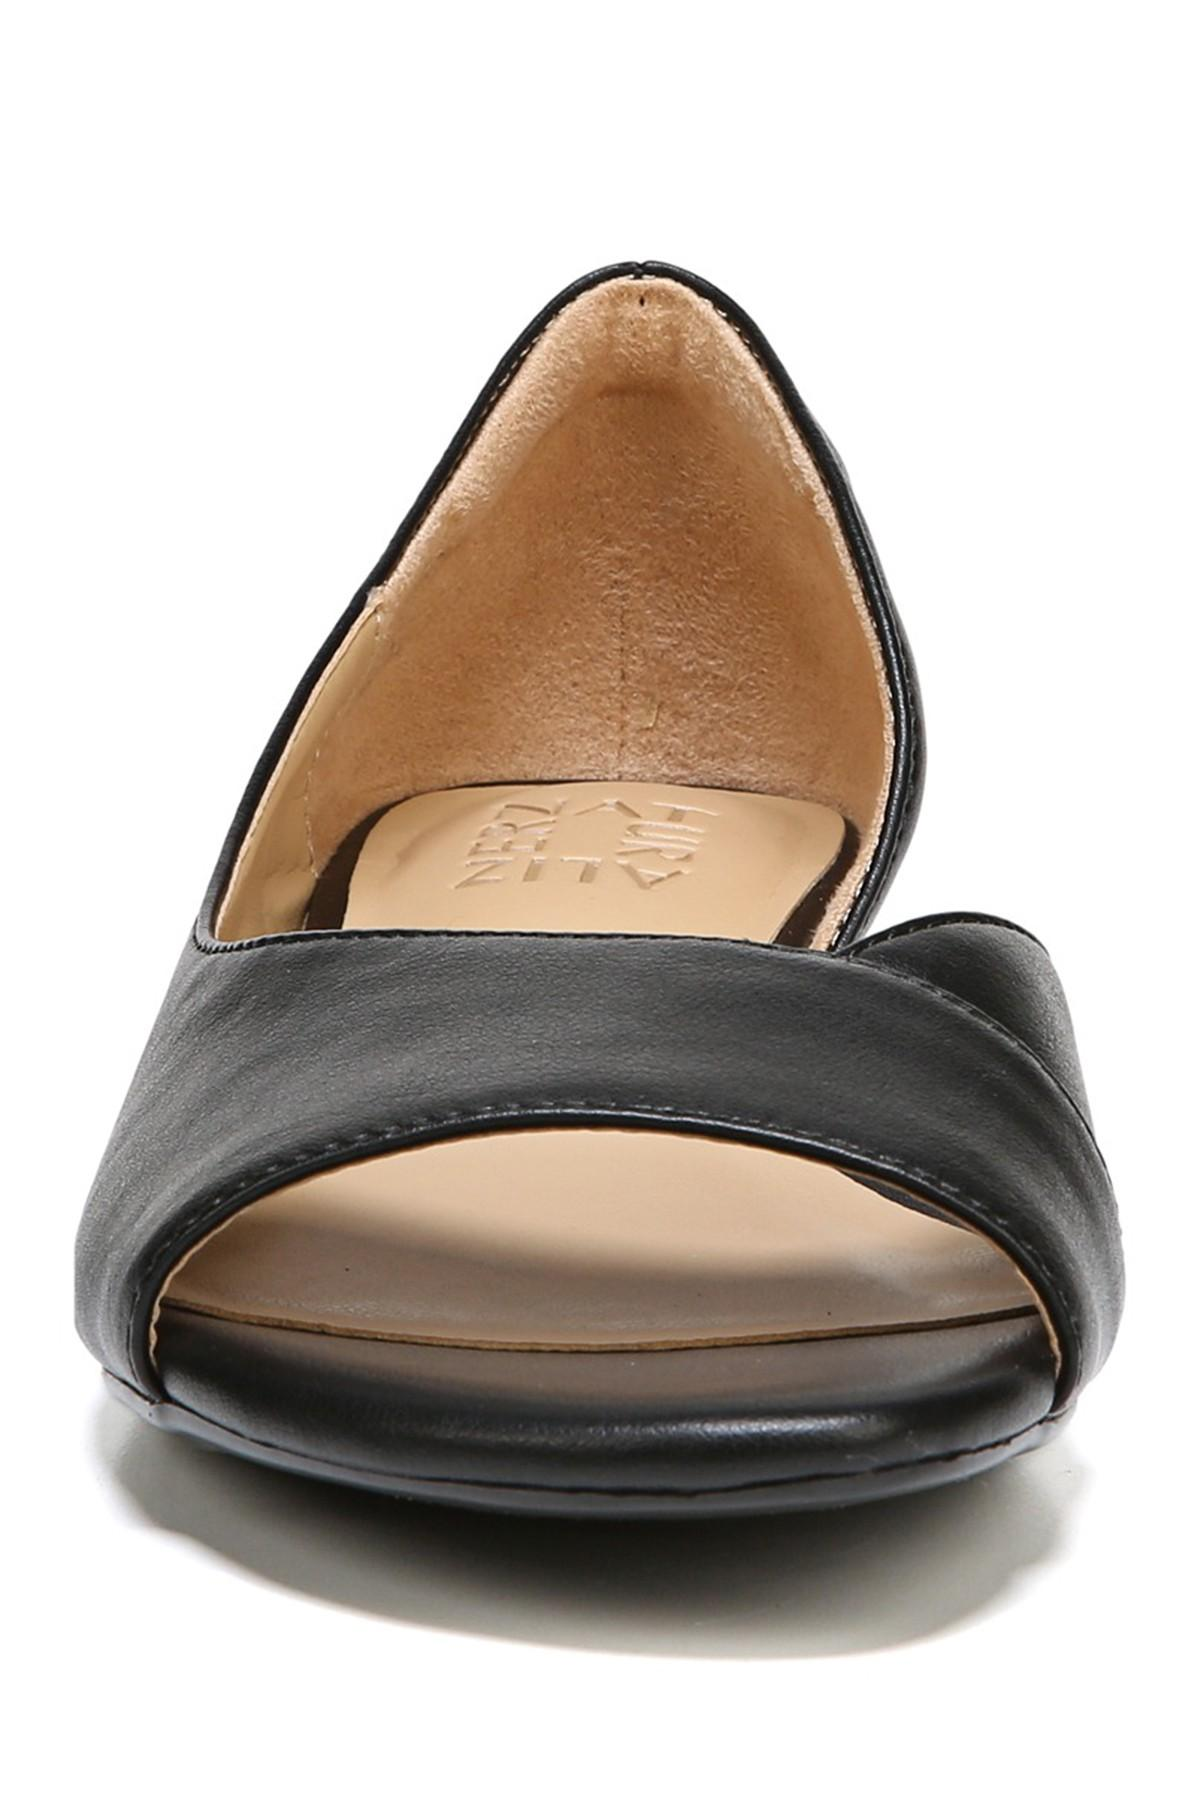 33e855b1dd4 Naturalizer - Black Jasmin Wedge - Wide Width Available - Lyst. View  fullscreen